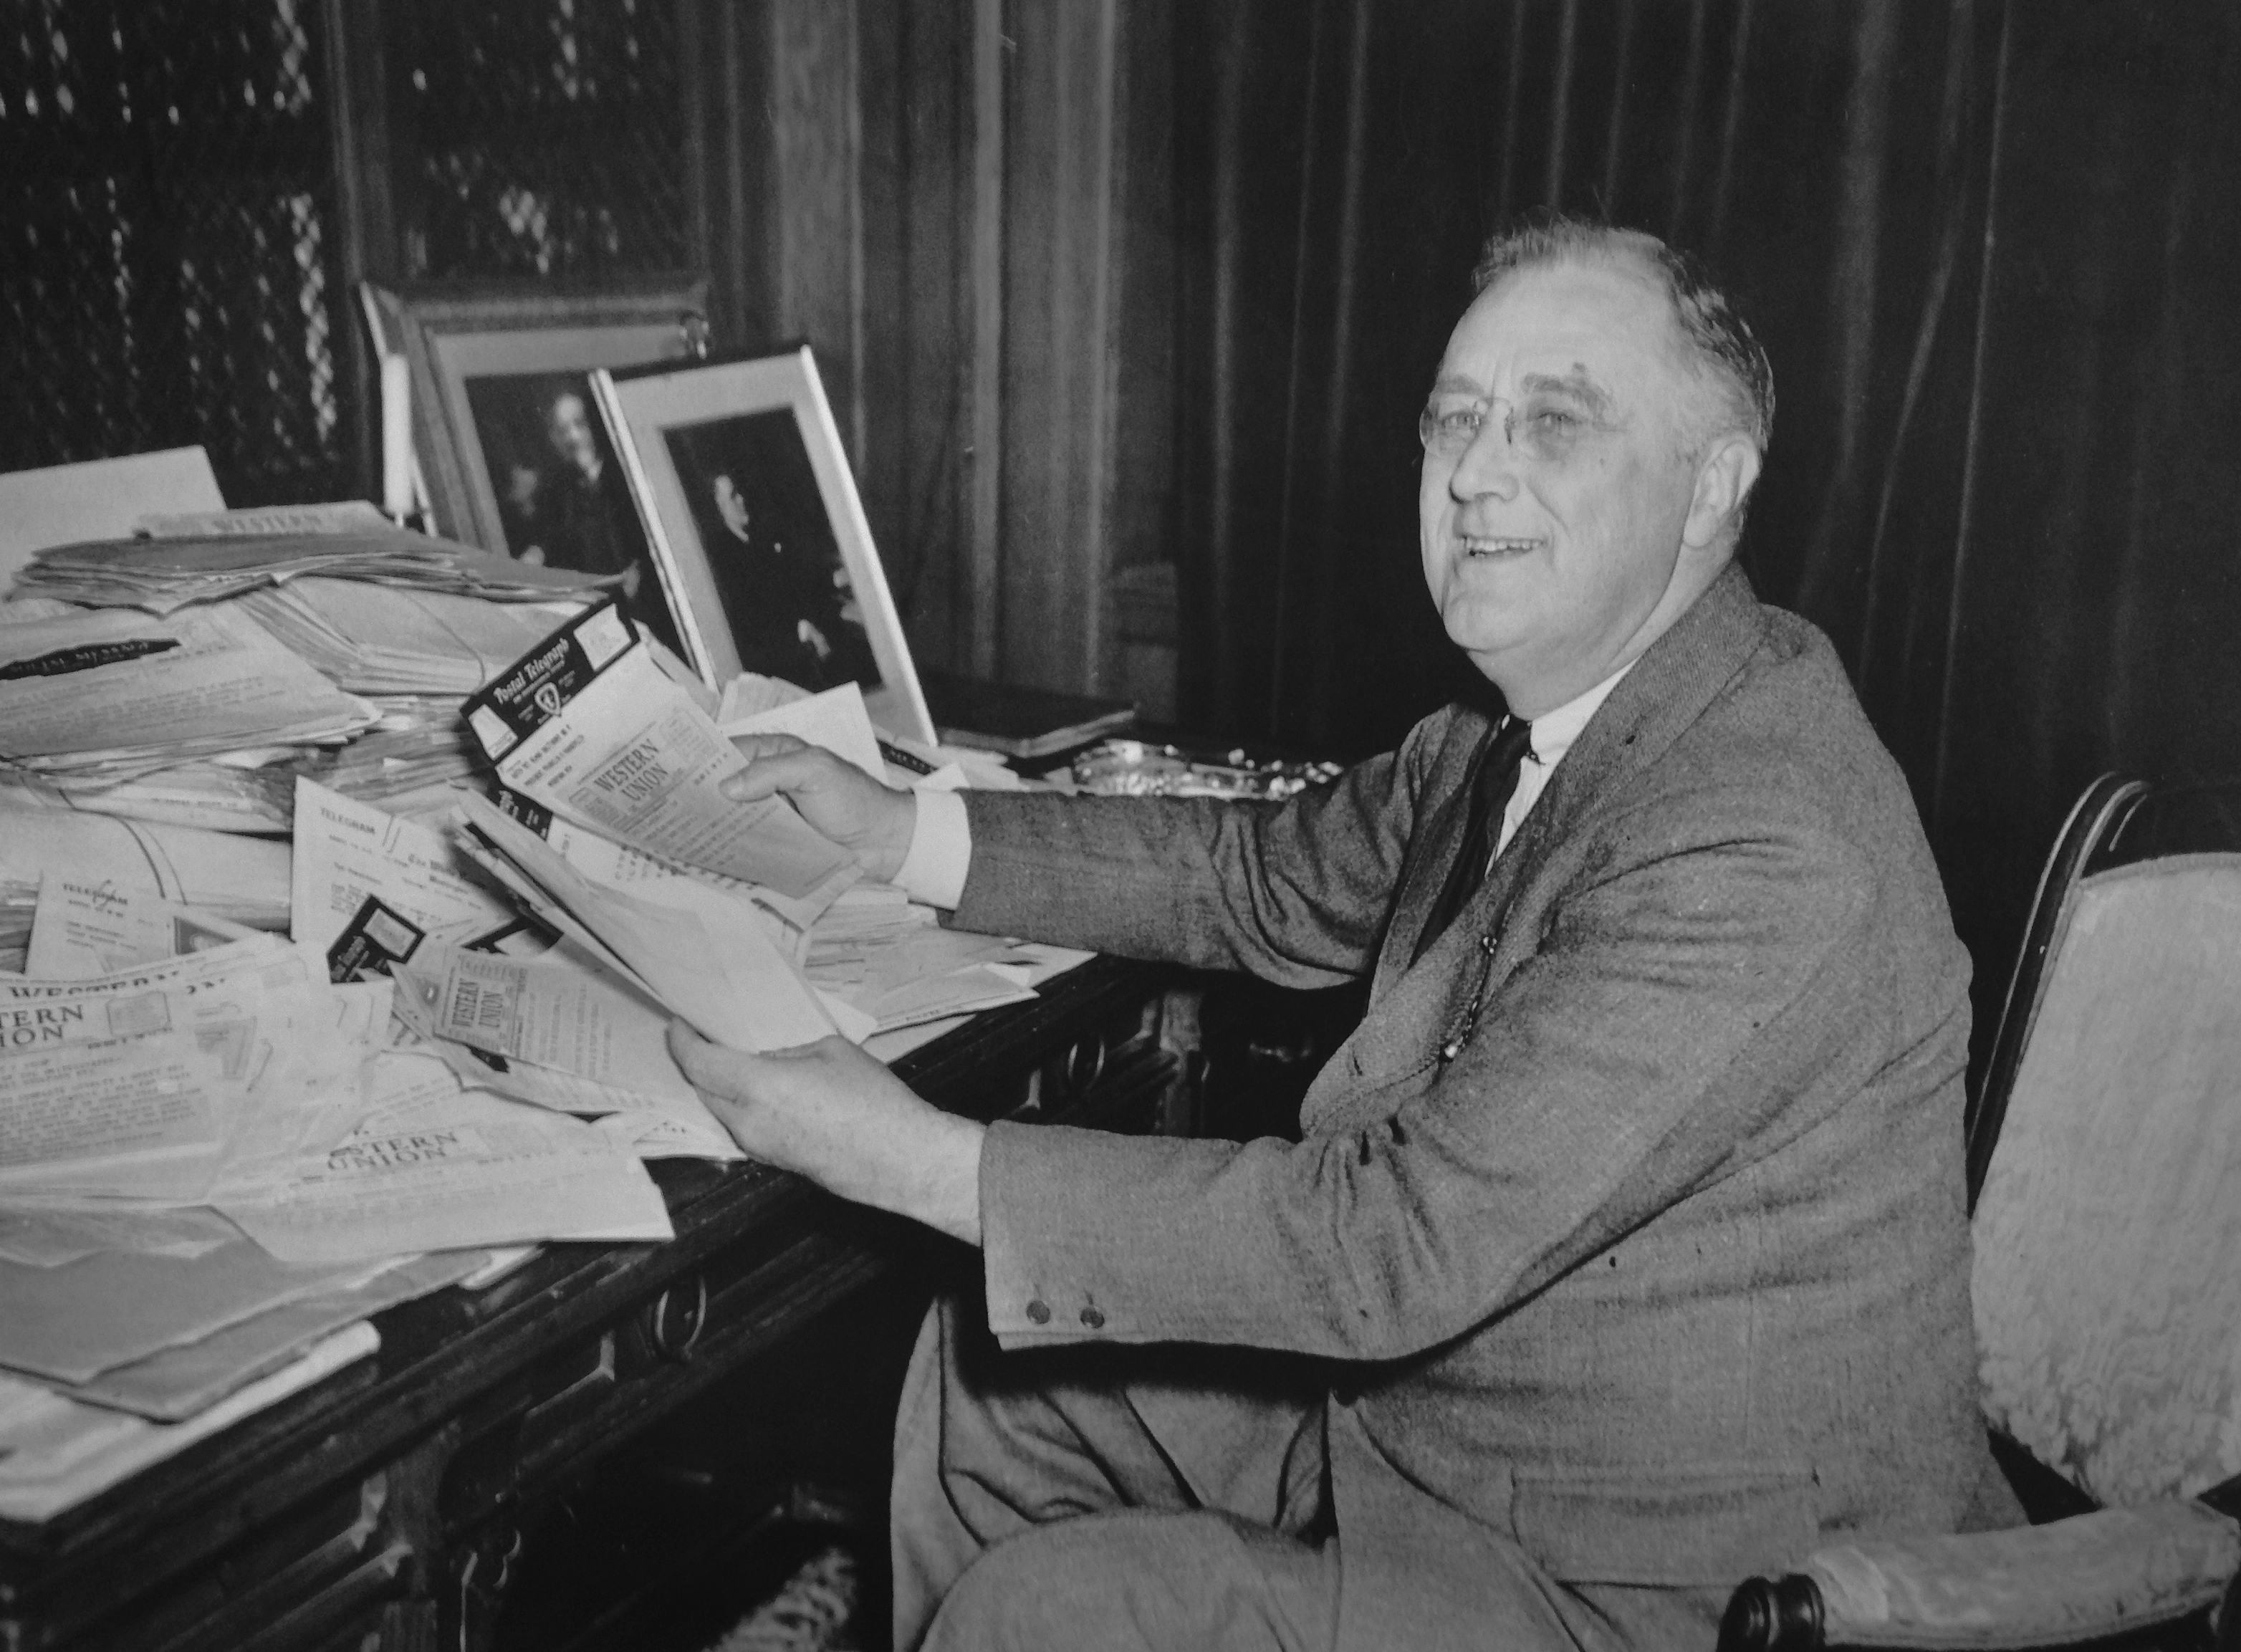 President Franklin D. Roosevelt received an average of 8,000 letters, cards and telegrams daily. (Photo: Franklin D. Roosevelt Presidential Library)